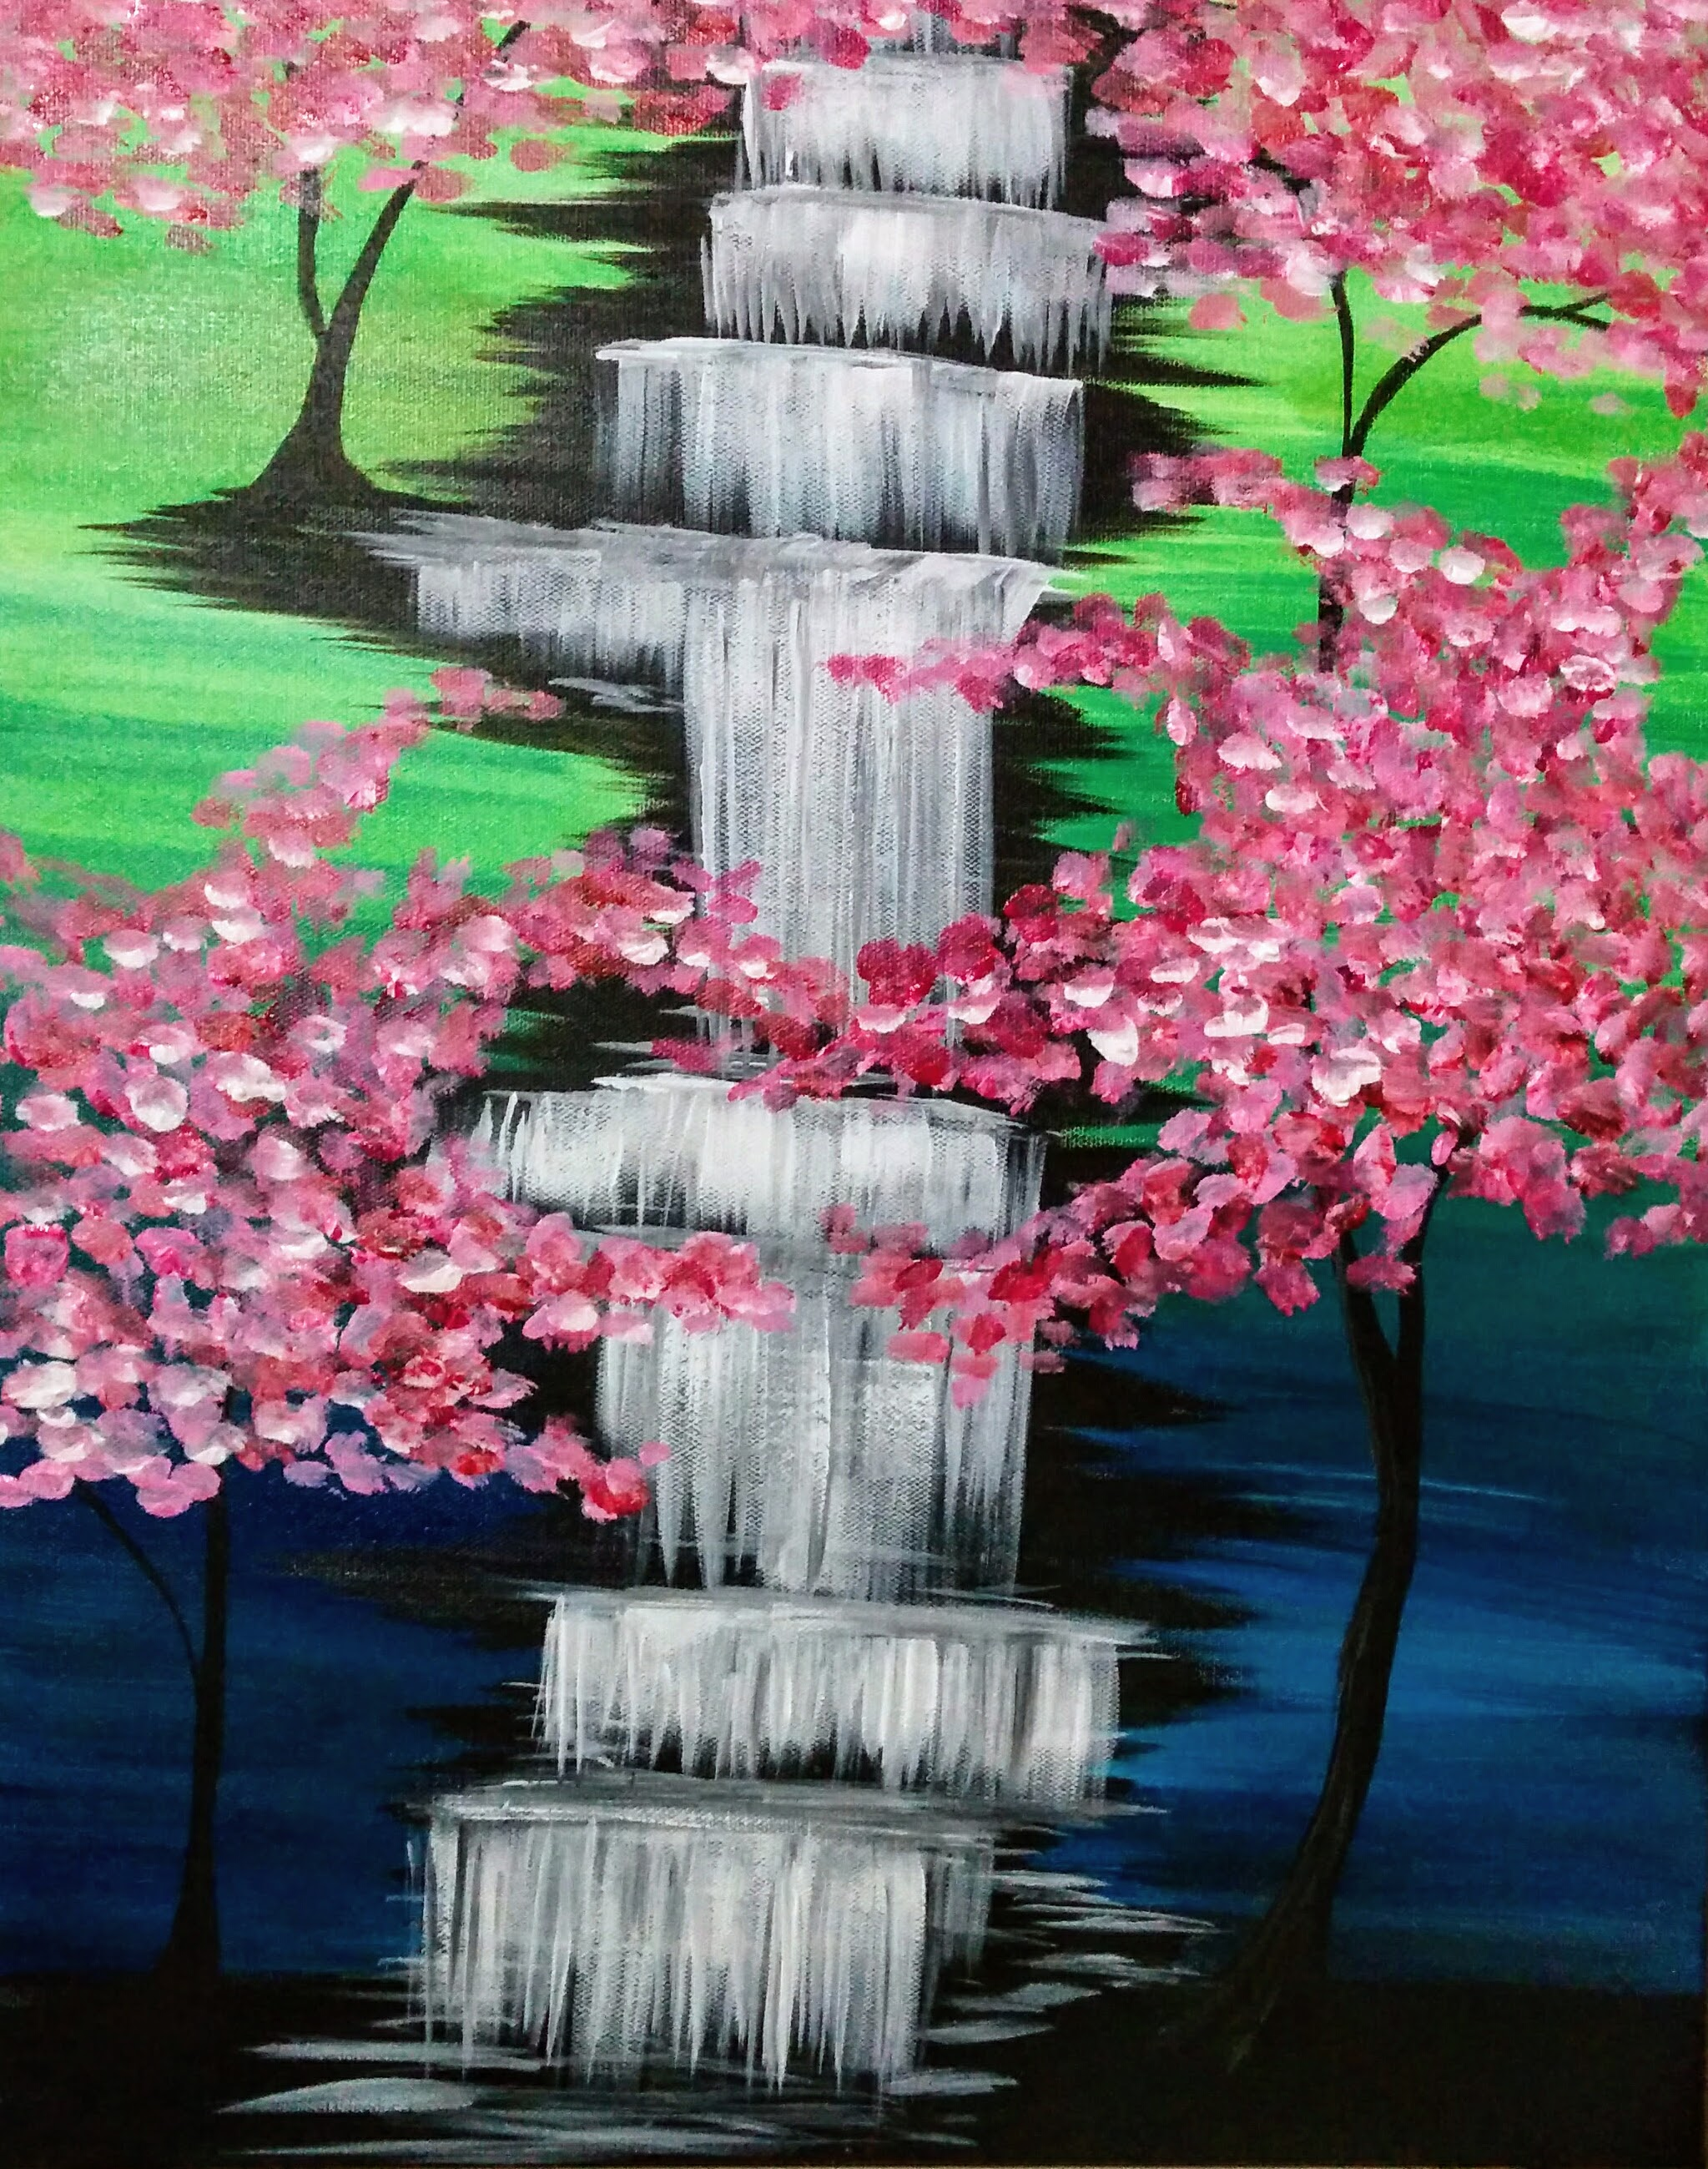 Cheery Blossom Waterfalls